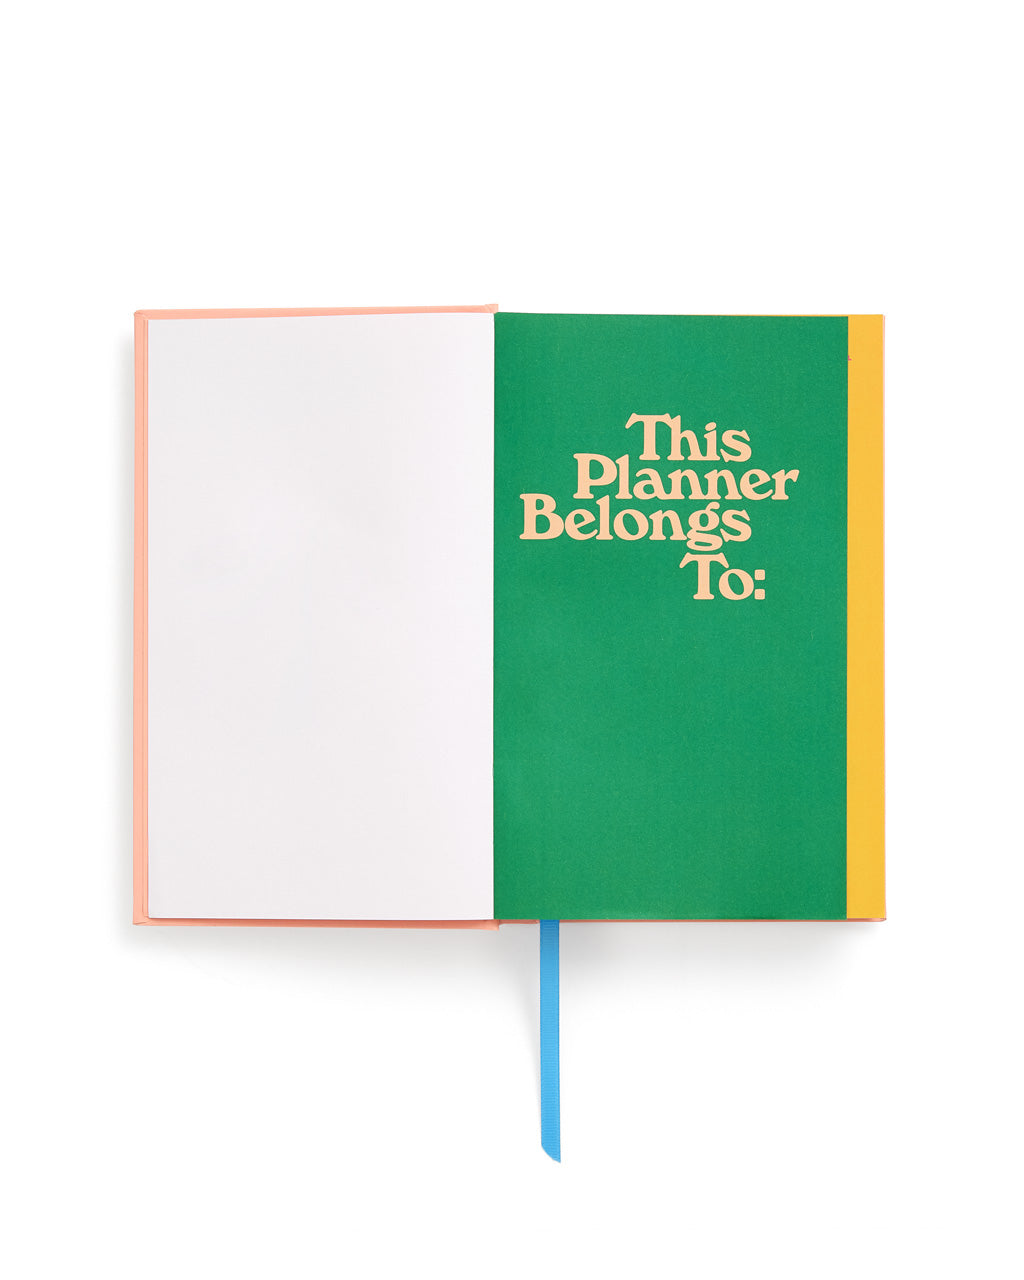 interior image of front end sheet featuring a this planner belongs to section